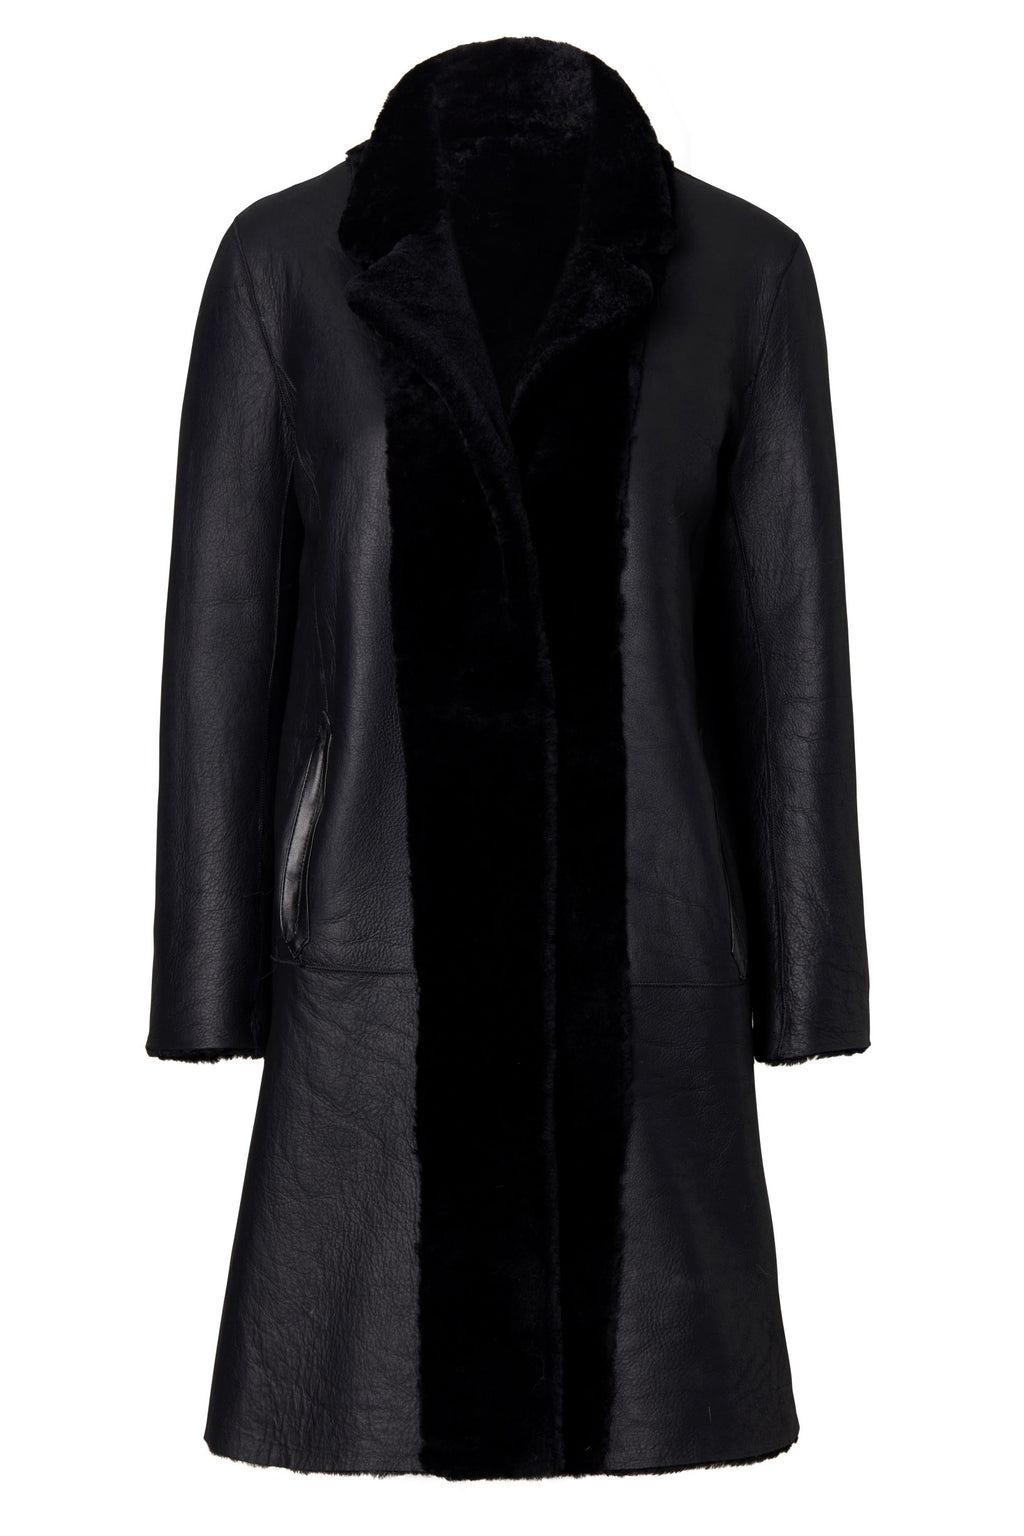 CLAIRE REVERSIBLE COAT BLACK